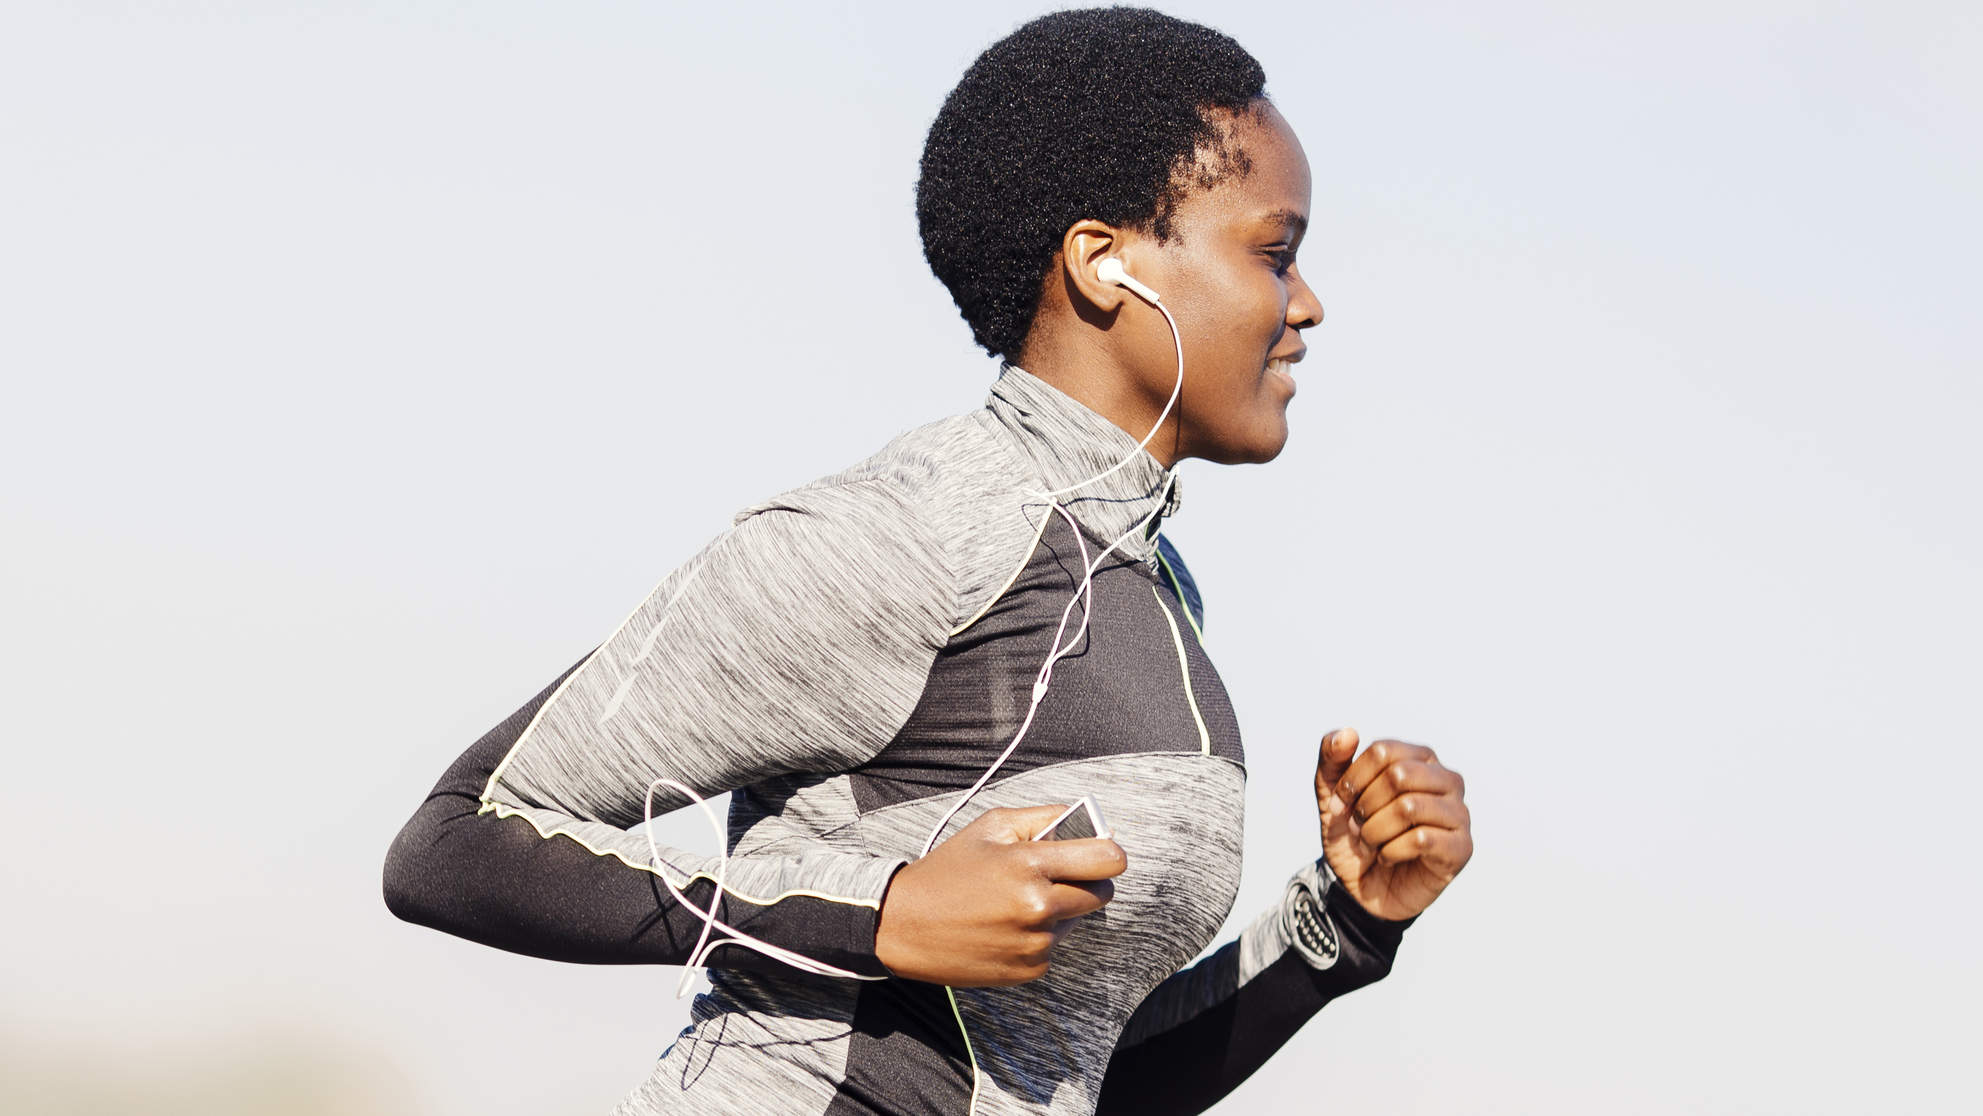 Music Makes Hard Workouts Feel Easier, Study Confirms